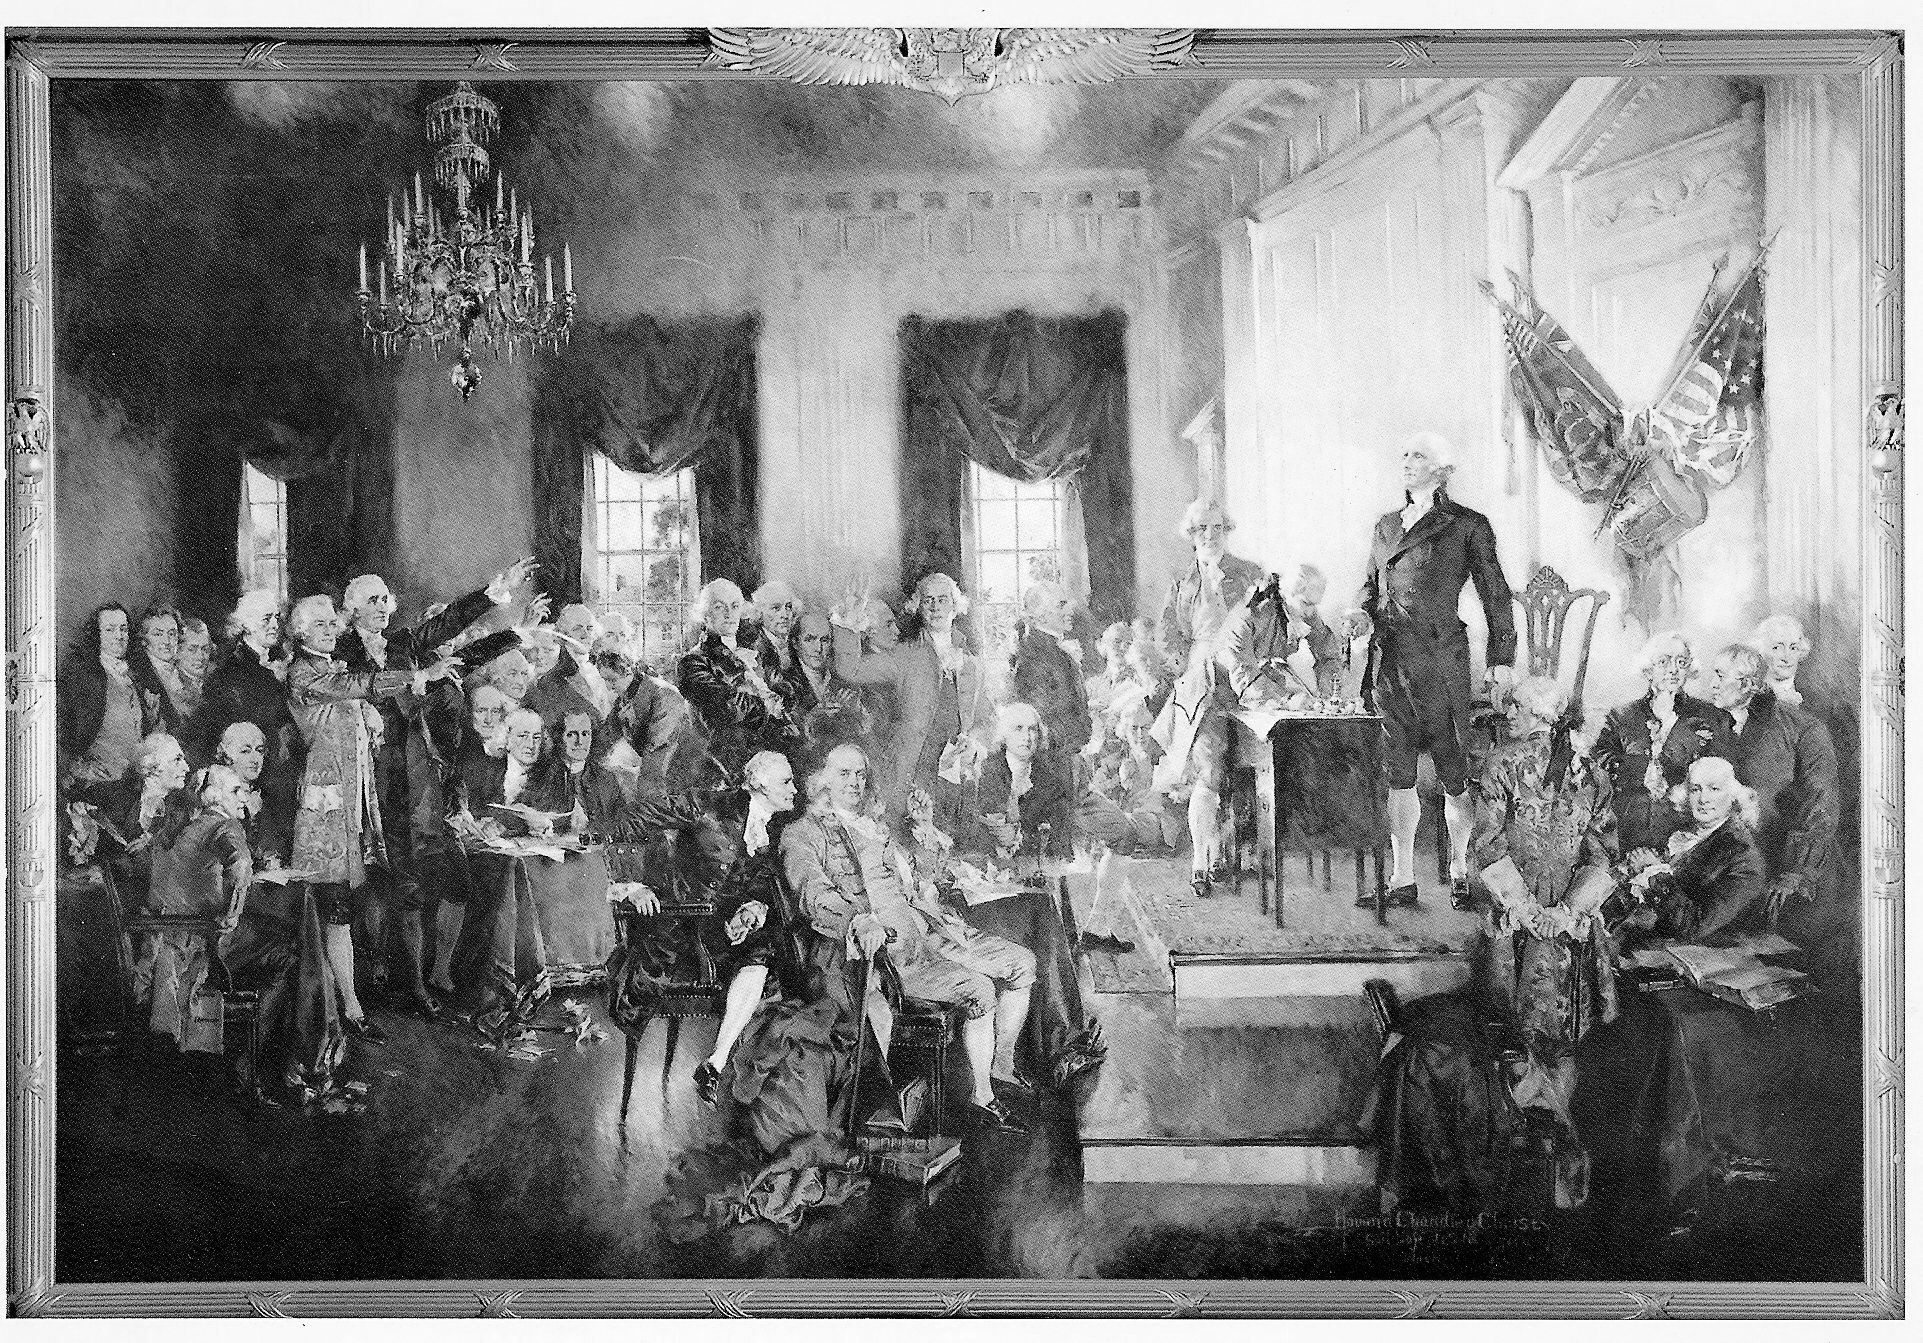 chapter 14 shay s rebellion however helped trigger the constitutional convention in philly see the illustration by howard chandler christy and in 1787